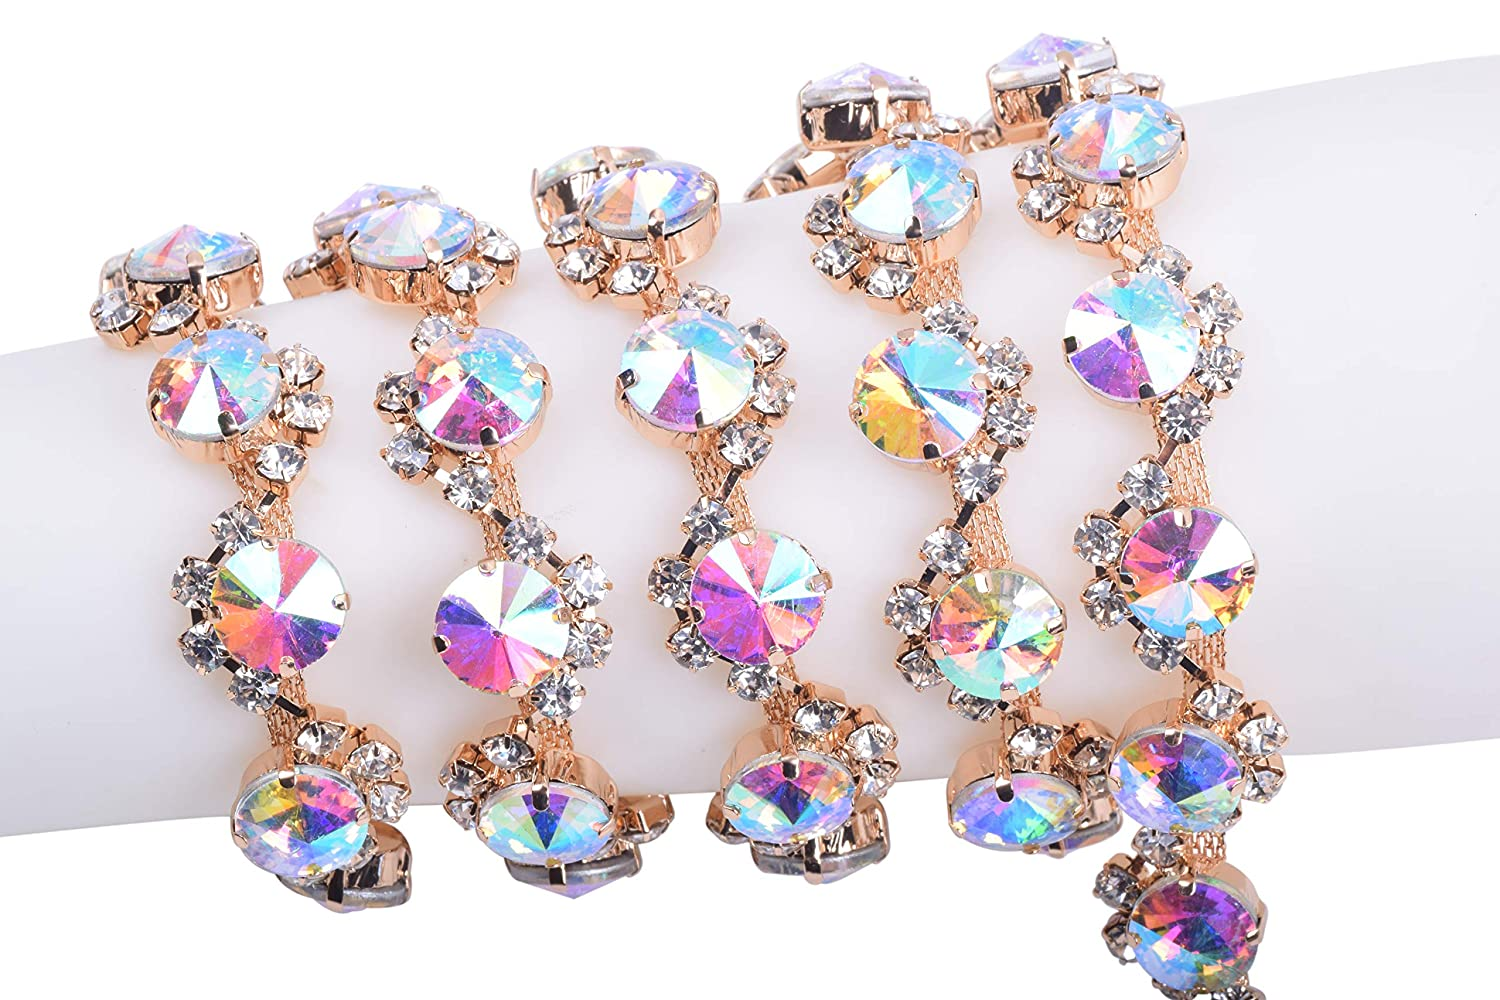 KAOYOO 1 Yard Crystal Rhinestone Claw Chains S Shape Winding Sapphire Satellite Stone for Jewelry Crafts DIY,Sewing Craft